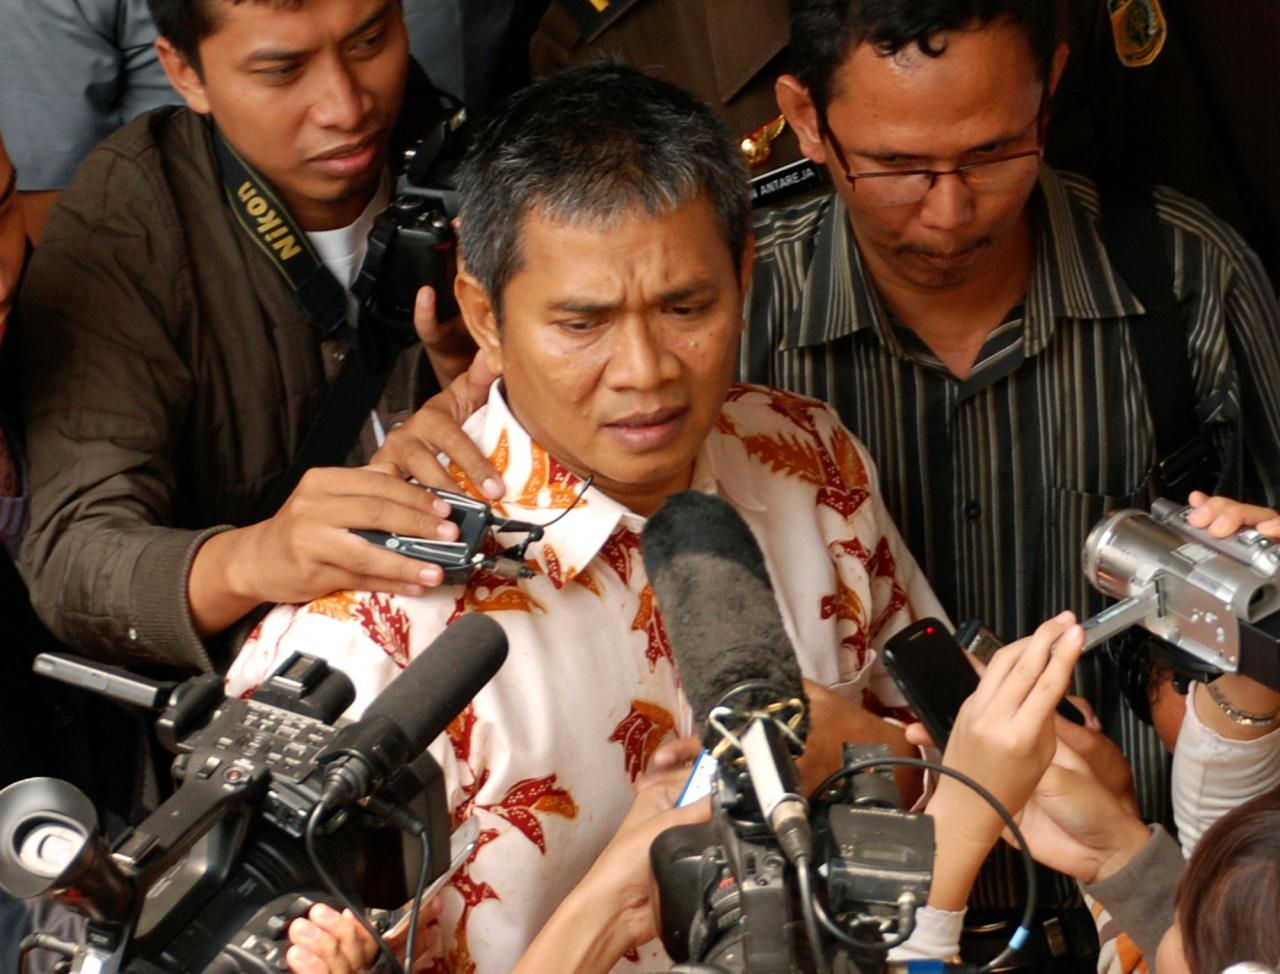 Member of Ahmadiyah sect Deden Sudjana, center, speaks to the press after his trial at a district court in Serang, Banten, Indonesia, Monday, Aug. 15, 2011. The man injured when Muslim hard-liners attacked members of his minority Islamic sect was sentenced Monday to six months in jail, more than some of the actual attackers. (AP Photo)